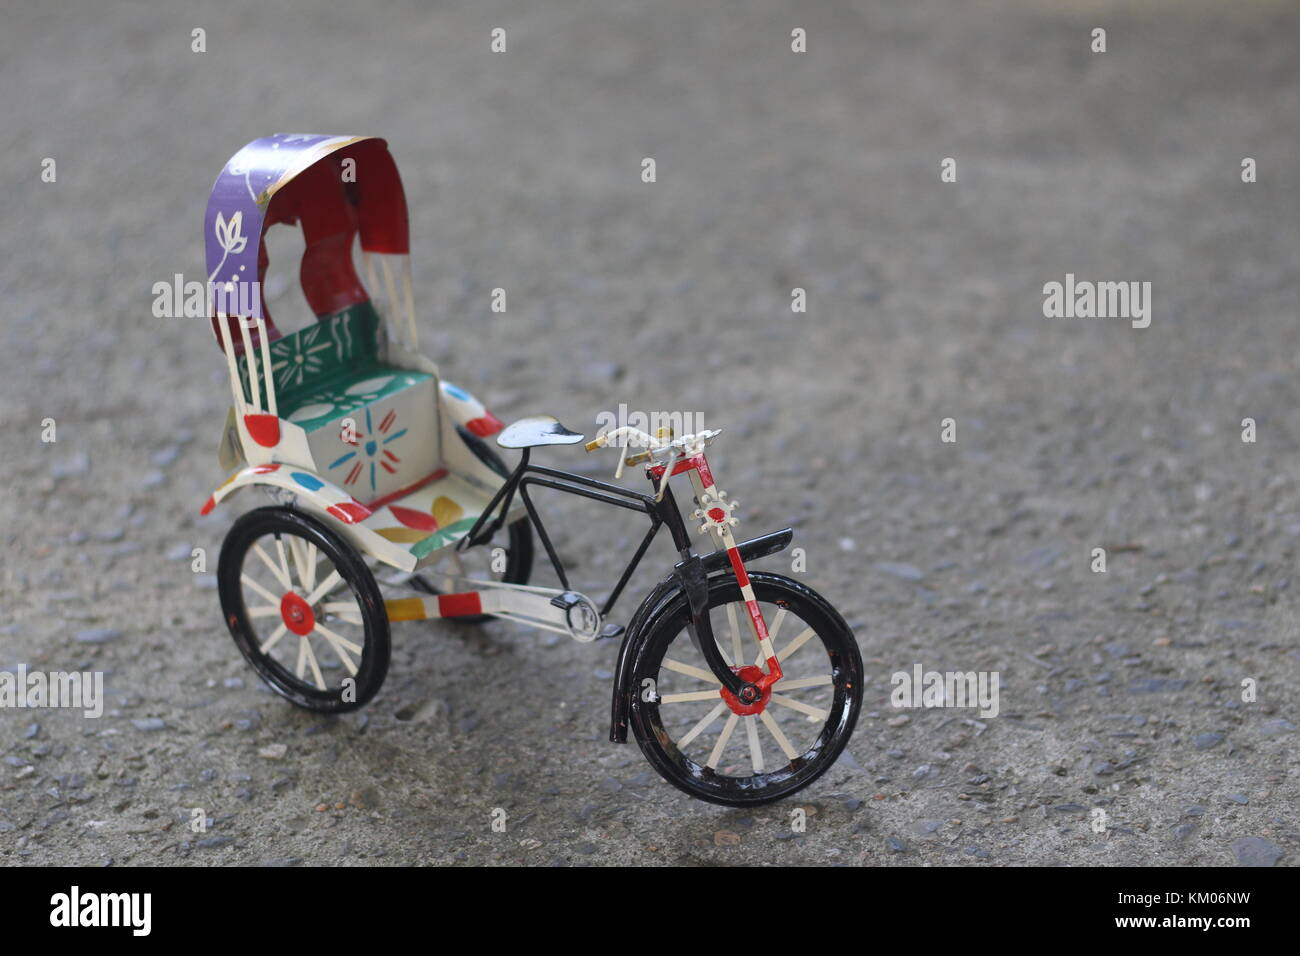 Rickshaw toy Bengali culture - Stock Image